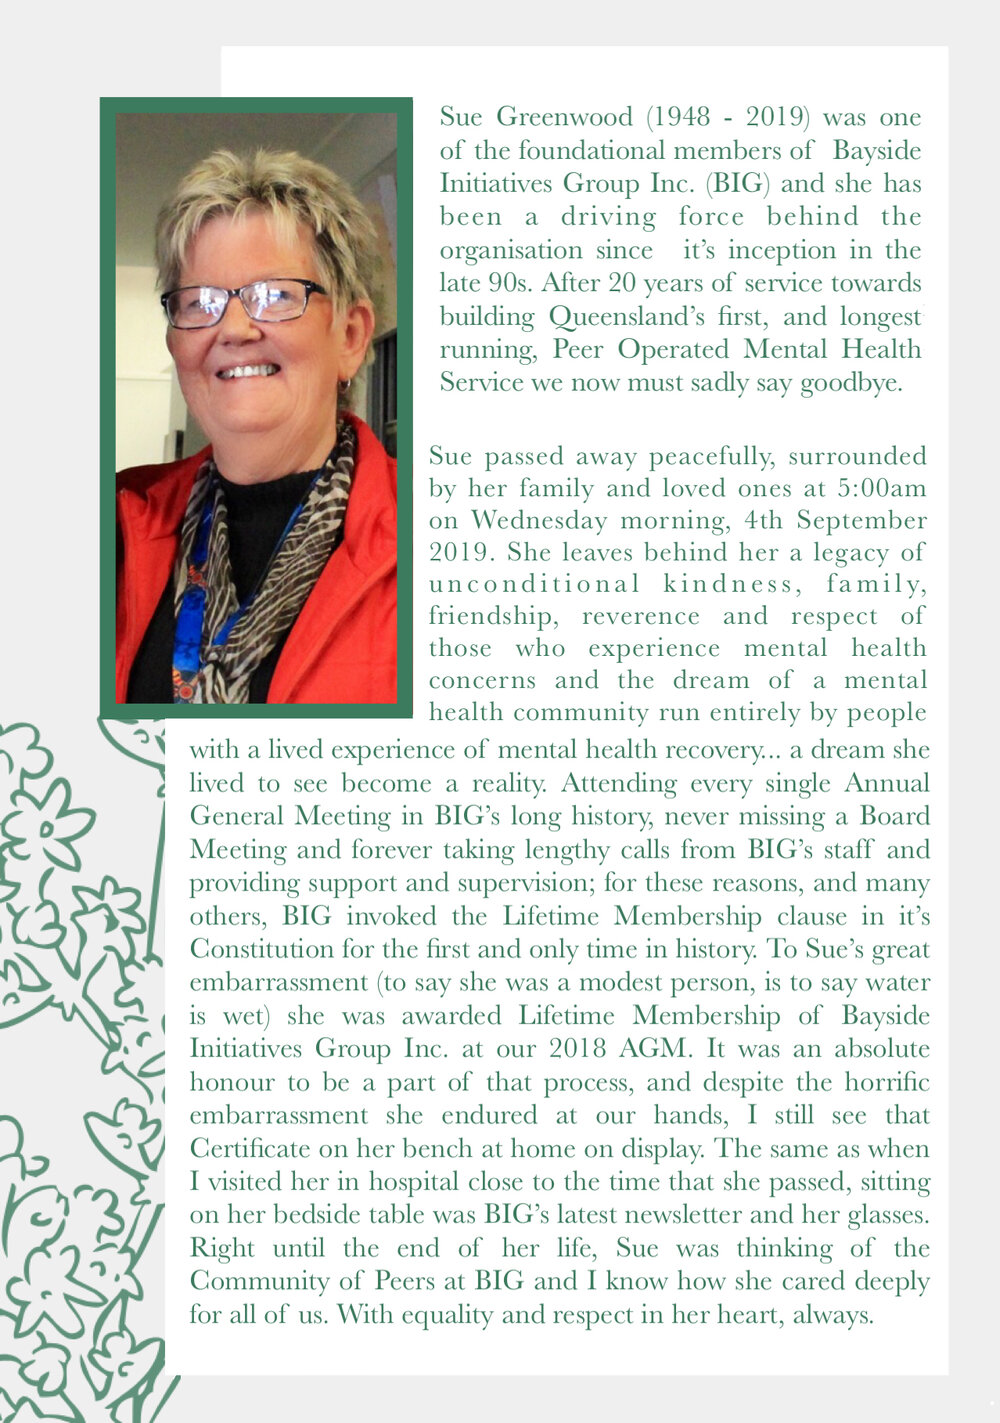 Sue Greenwood (1948 - 2019) was one of the foundational members of Bayside Initiatives Group Inc. (BIG) and she has been a driving force behind the organisation since it's inception in the late 90s. After 20 years of service towards building Queensland's first, and longest running, Peer Operated Mental Health Service we now must sadly say goodbye.   Sue passed away peacefully, surrounded by her family and loved ones at 5:00am on Wednesday morning, 4th September 2019. She leaves behind her a legacy of unconditional kindness, family, friendship, reverence and respect of those who experience mental health concerns, and the dream of a mental health community run entirely by people with a lived experience of mental health recovery... a dream she lived to see become a reality.